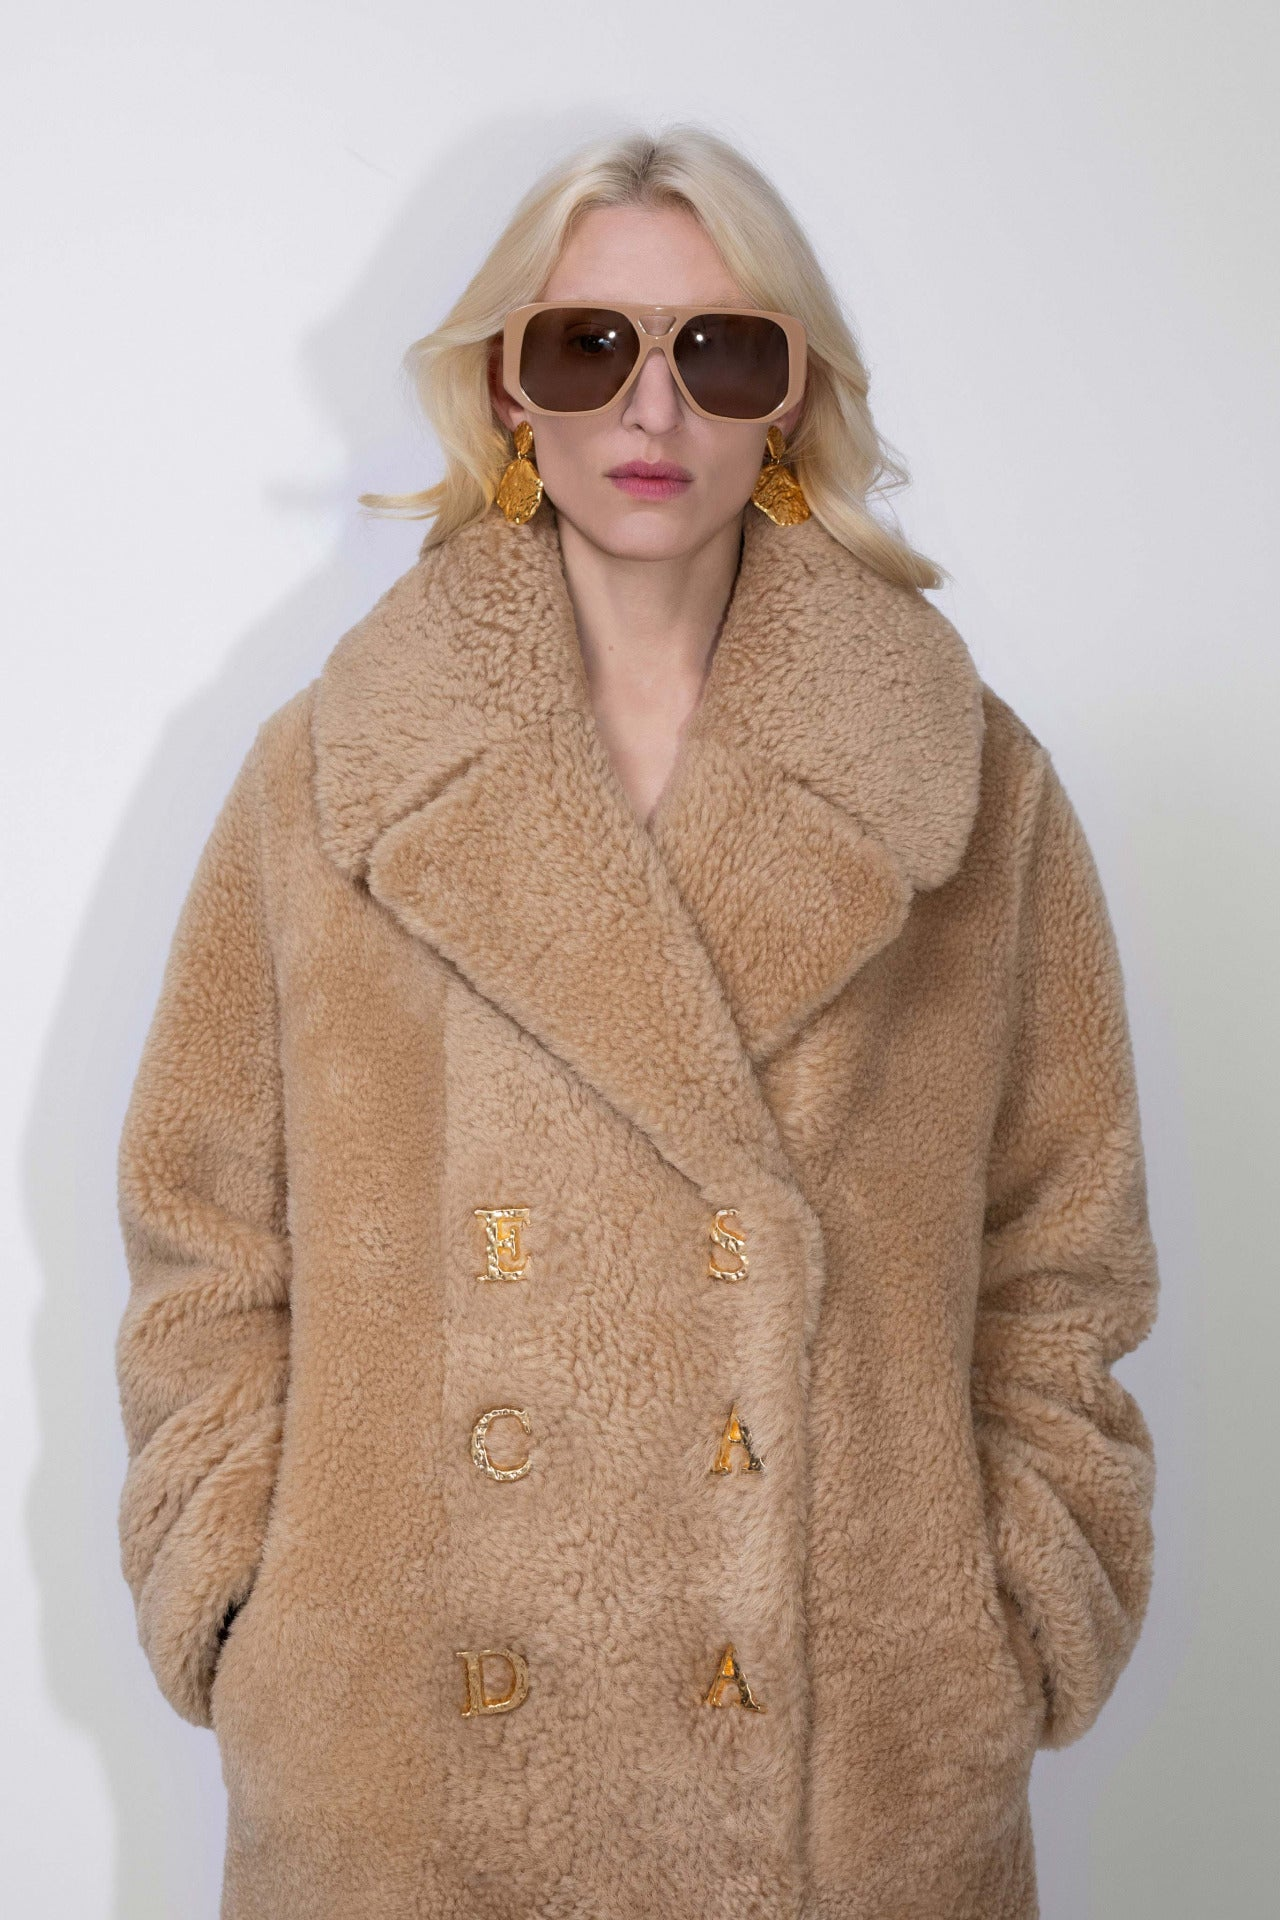 ESCADA Fall/Winter 2020 Shearling Coat